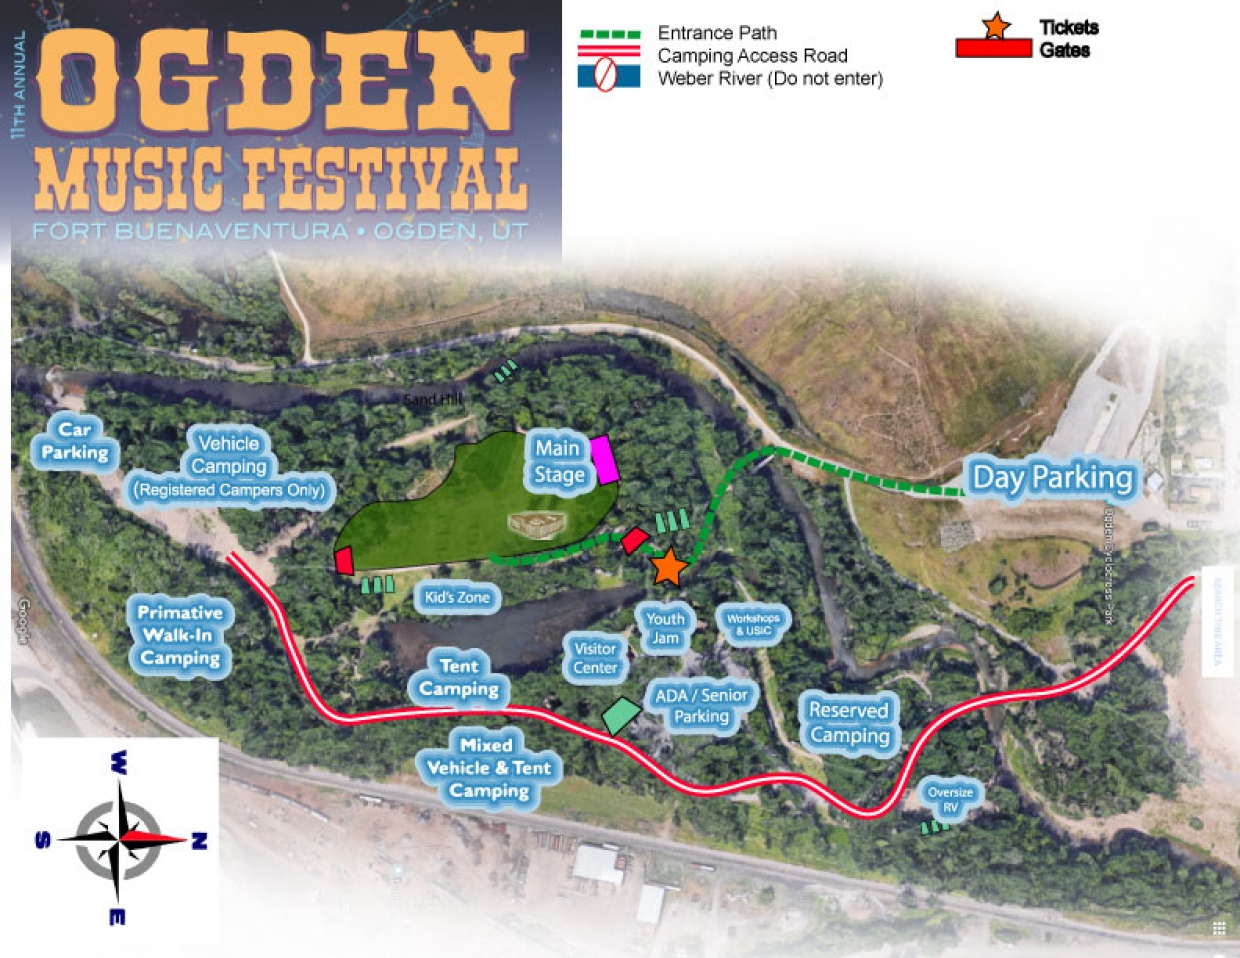 Ogden Music Festival Location and Camping Map